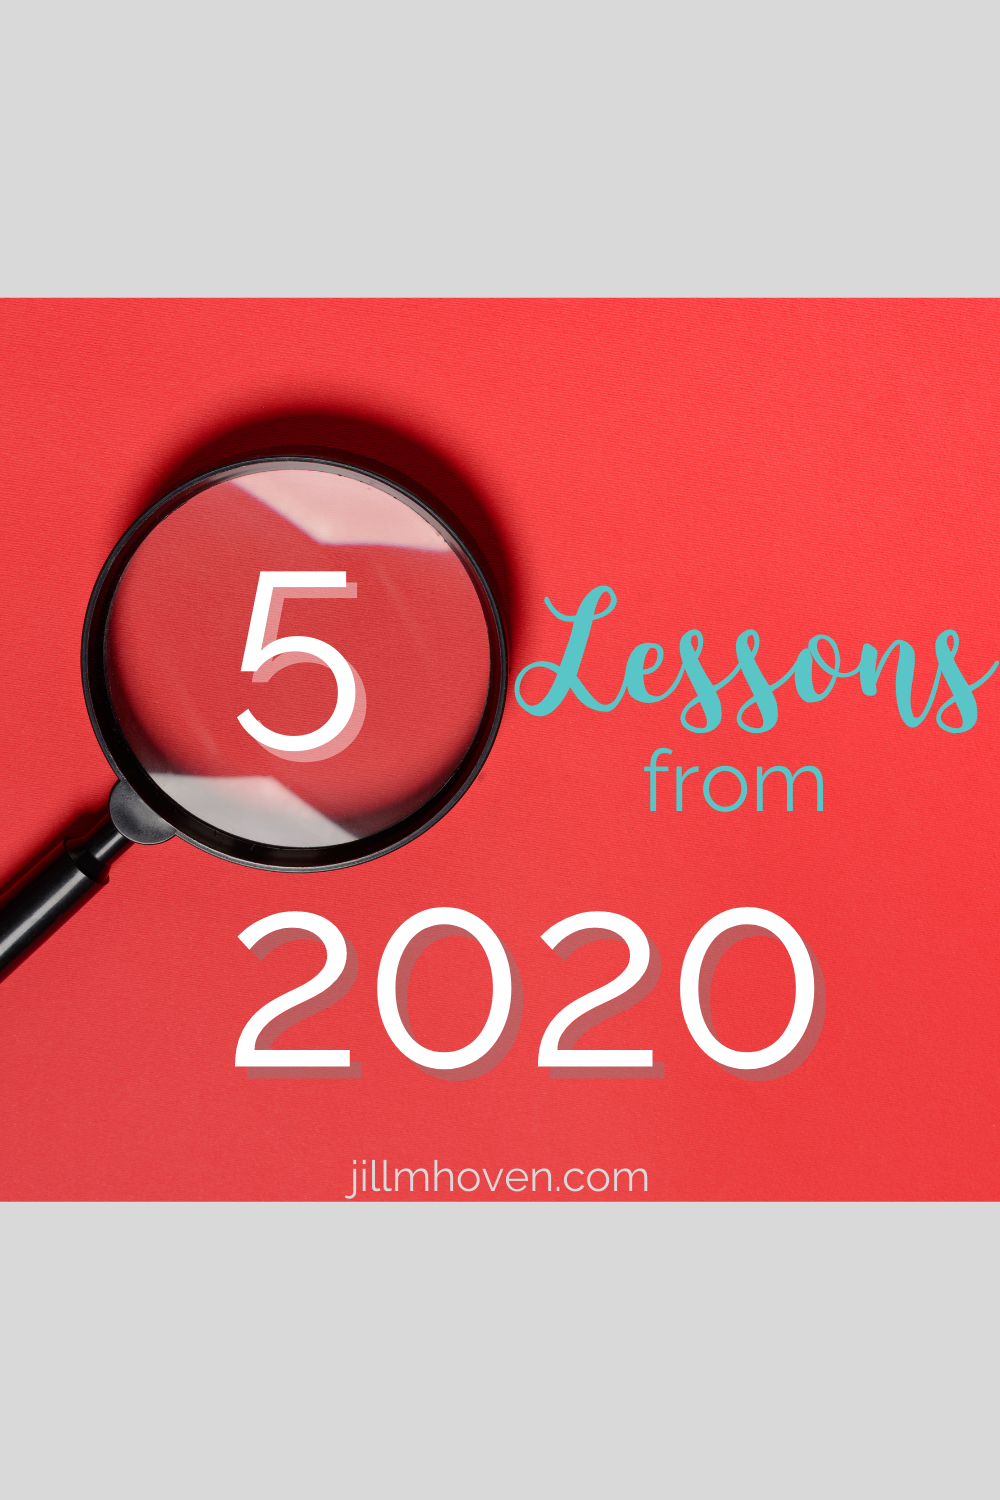 5 lessons from 2020